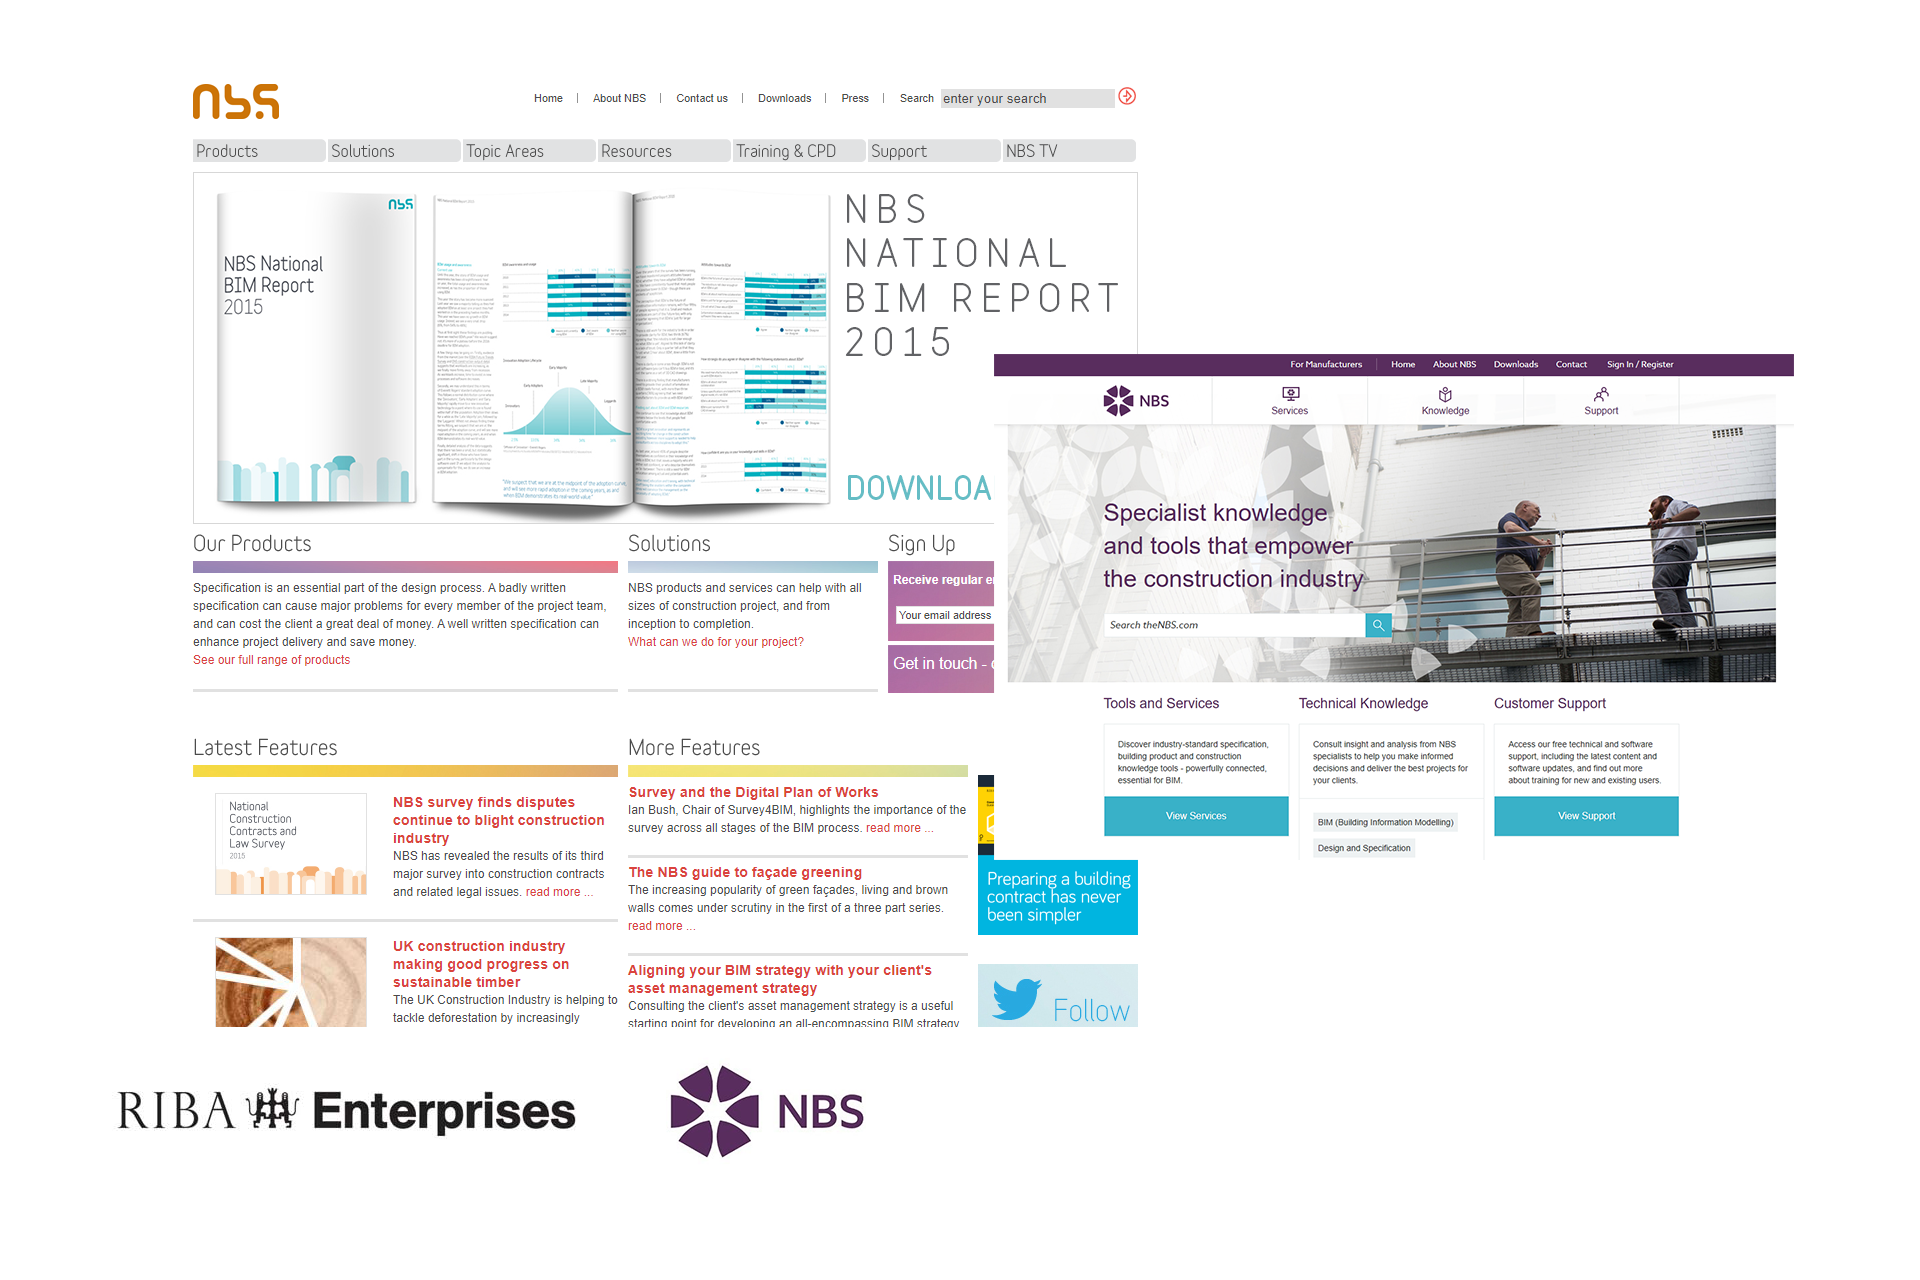 RIBA Enterprises Ltd / NBS